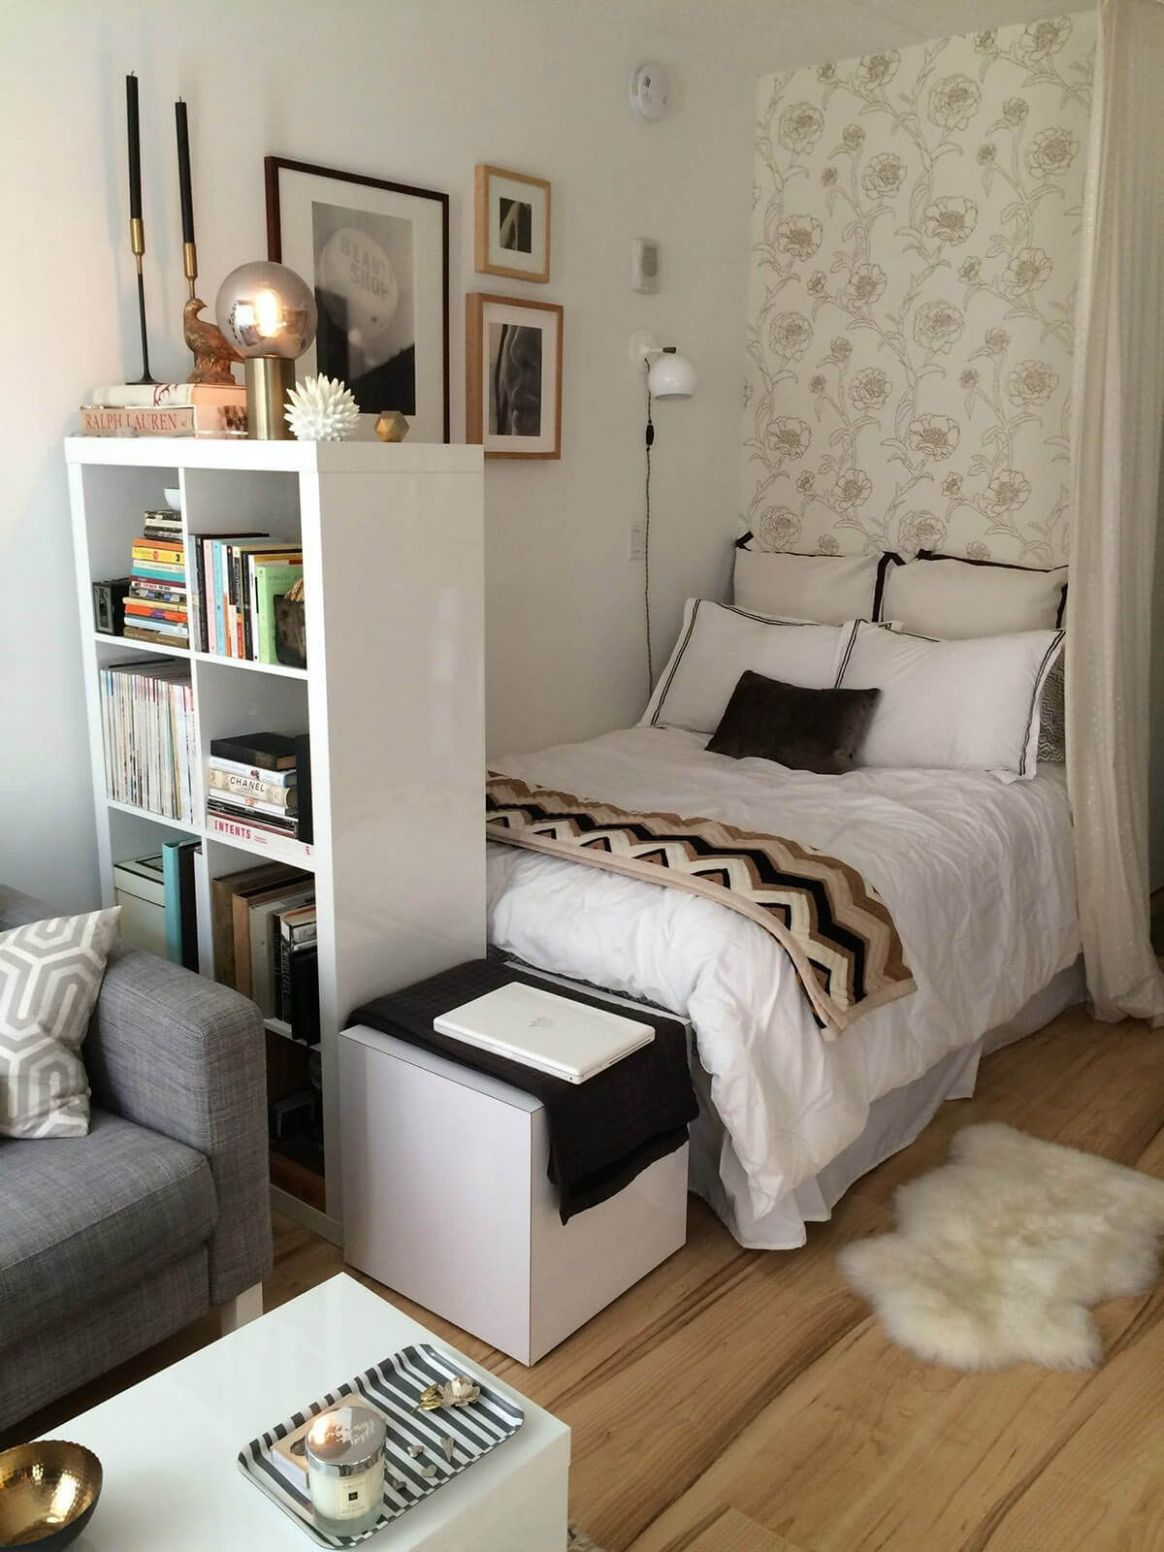 12+ Bedroom Decorating Ideas to Suit Every Style | Room decor ..